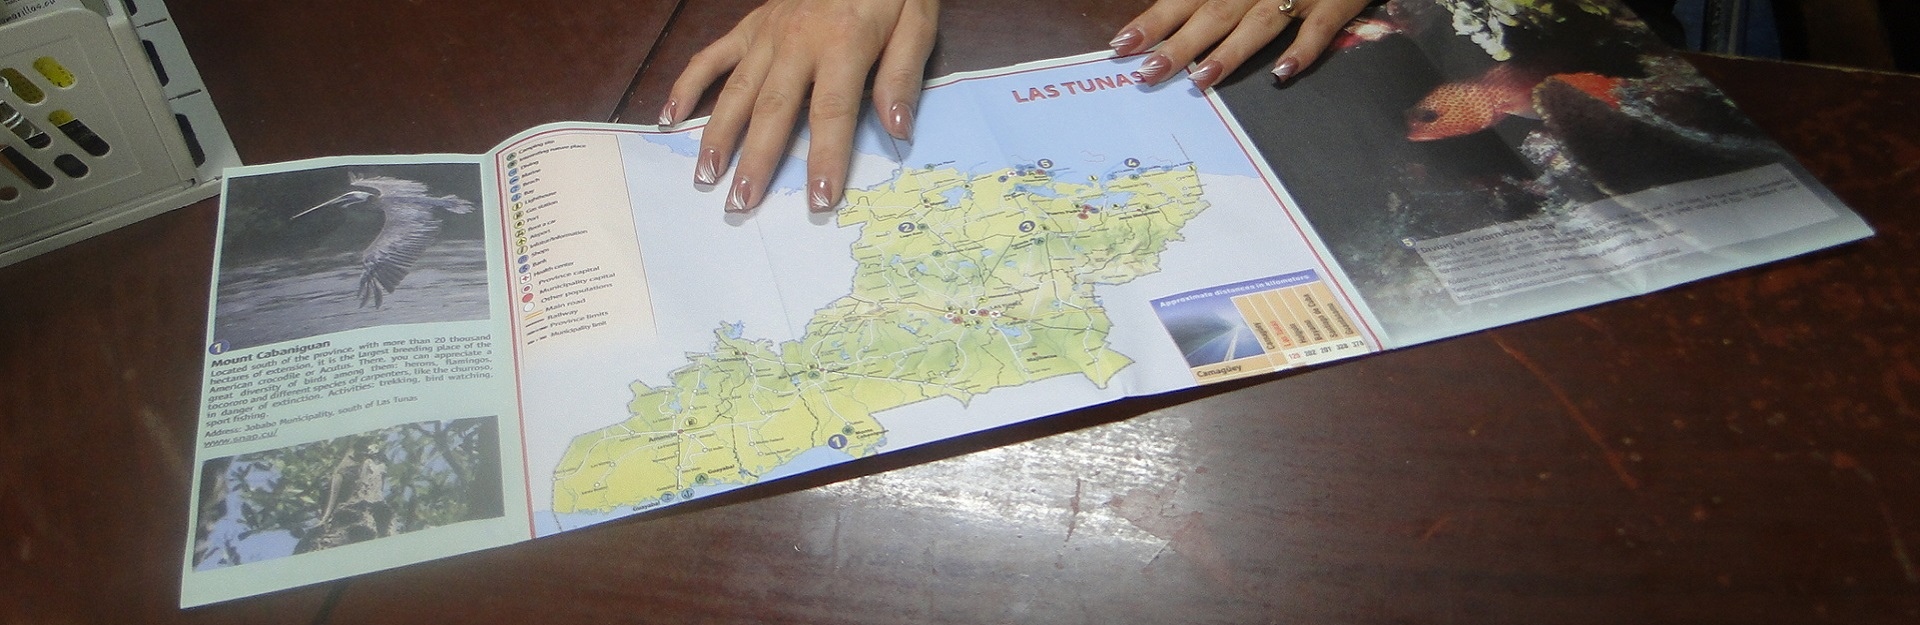 how to get, location of Las Tunas, Cuba Travel